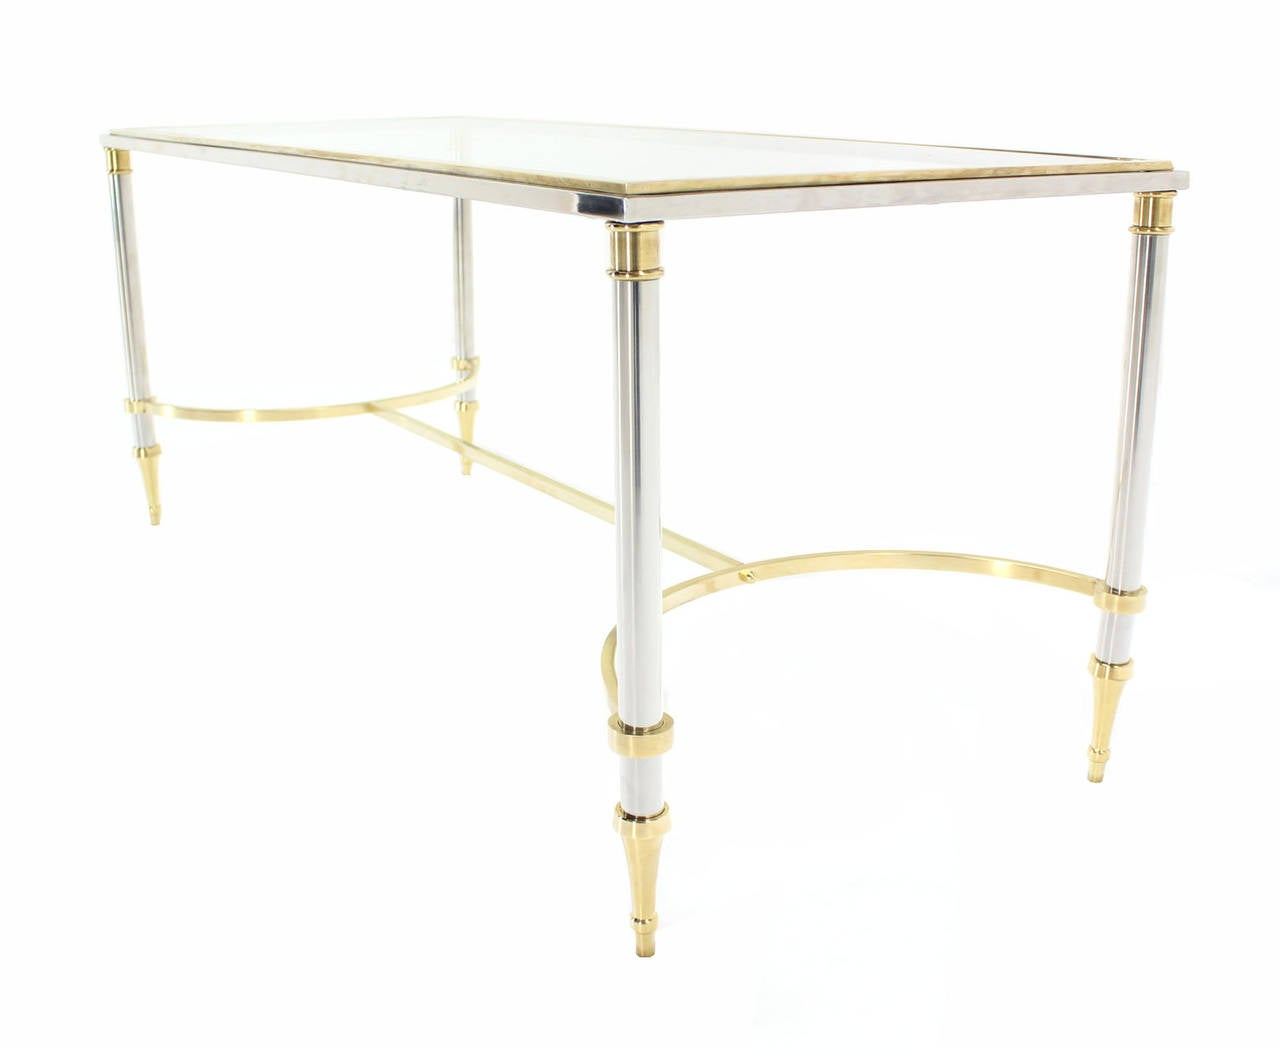 Chrome, Brass, and Glass-Top U-Shape Stretcher Coffee Table in Jansen Style In Excellent Condition For Sale In Elmwood Park, NJ